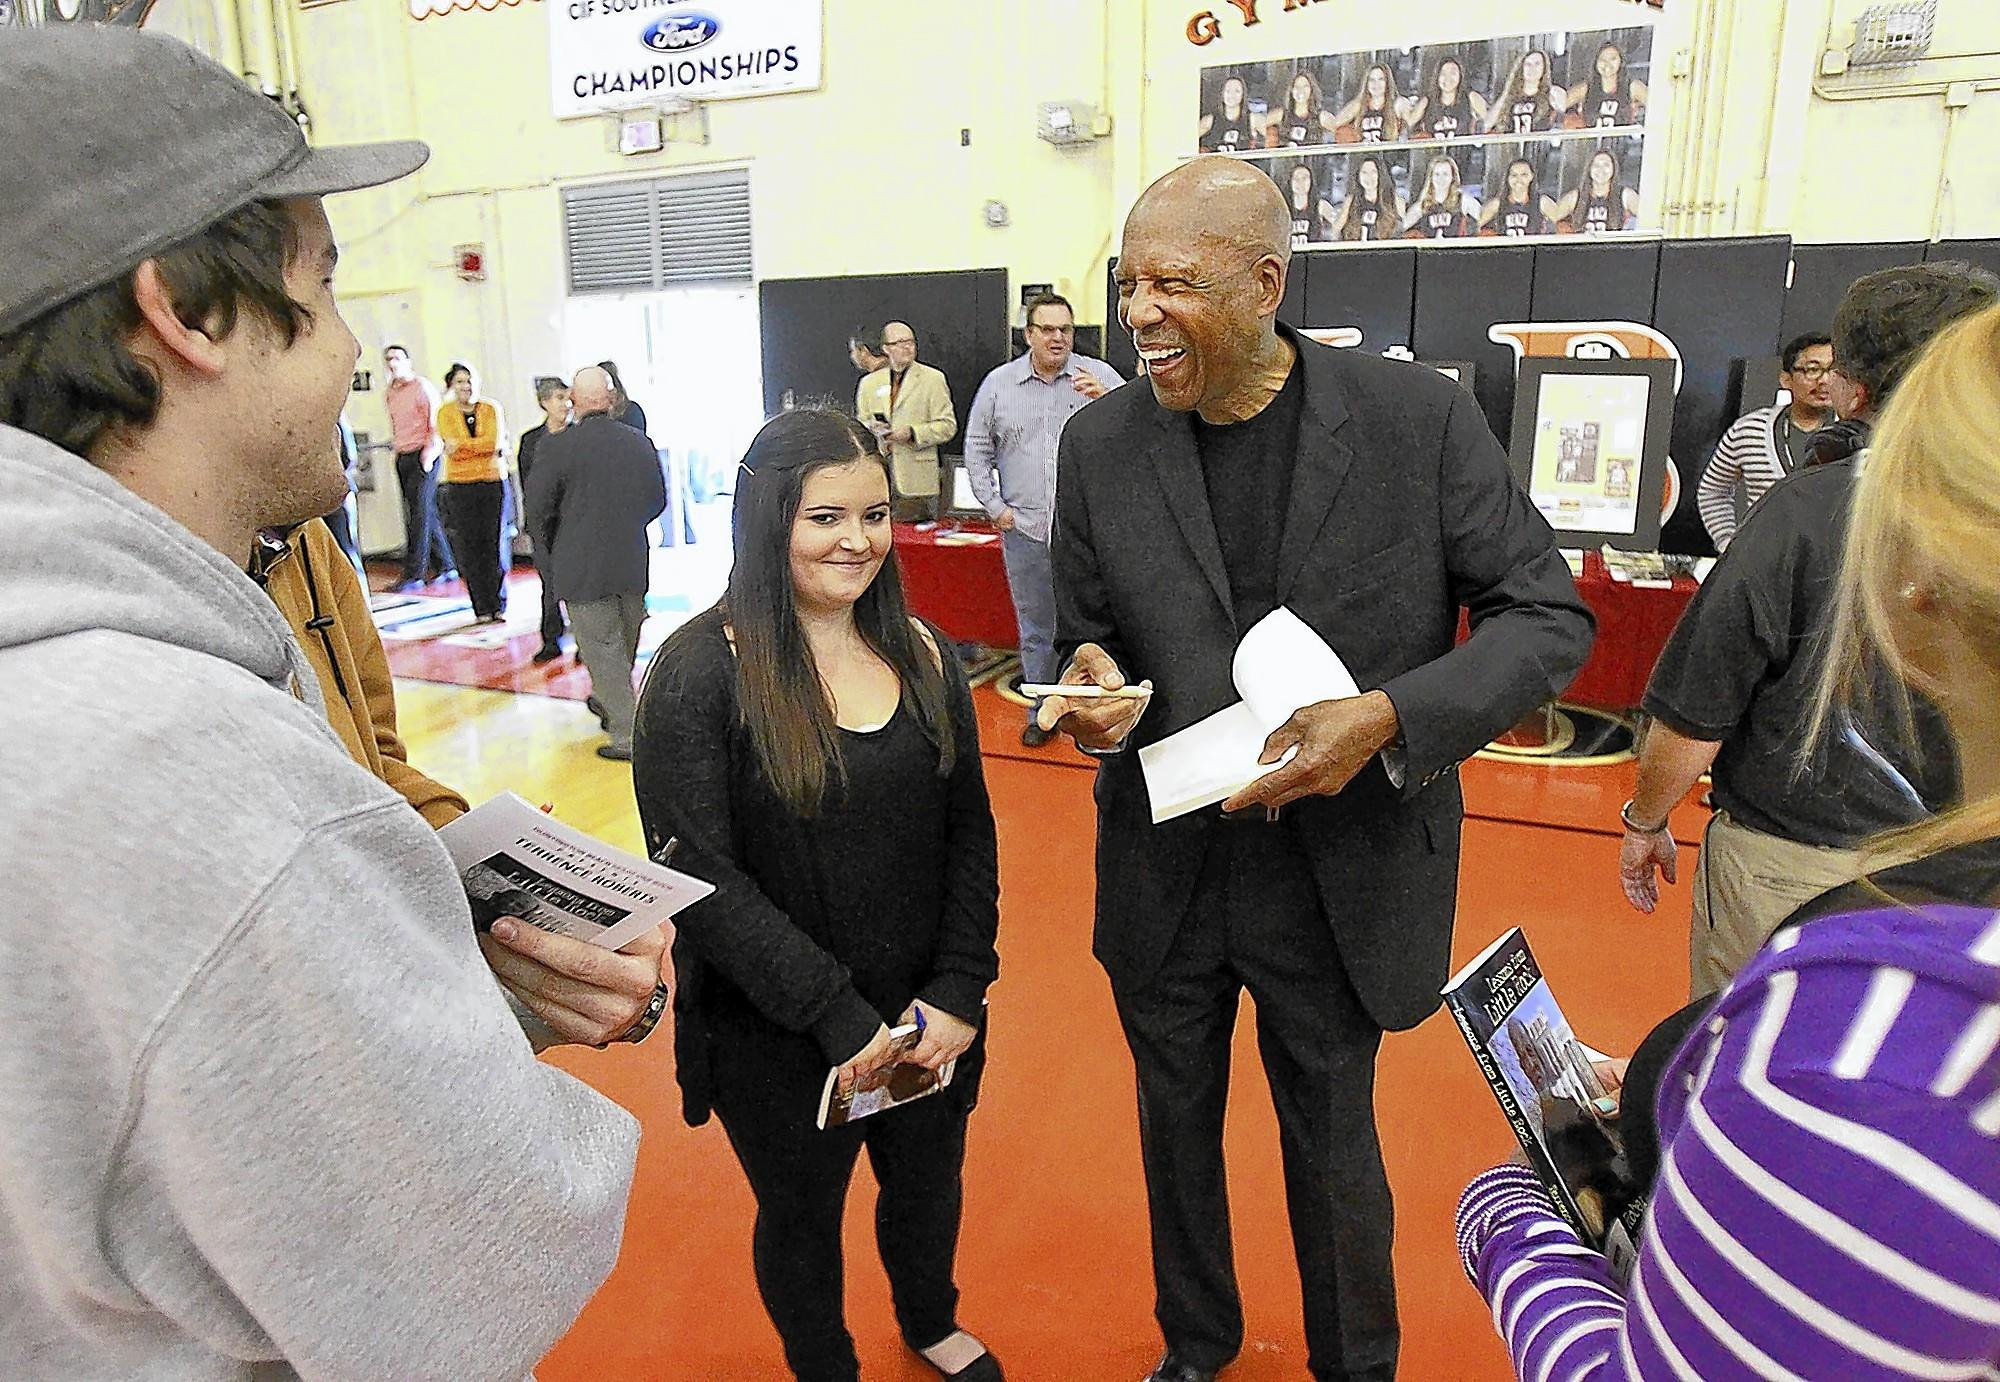 Terrence Roberts, one of the Little Rock Nine, signs autographs prior to his speaking engagement at the HB Reads assembly at Huntington Beach High School.